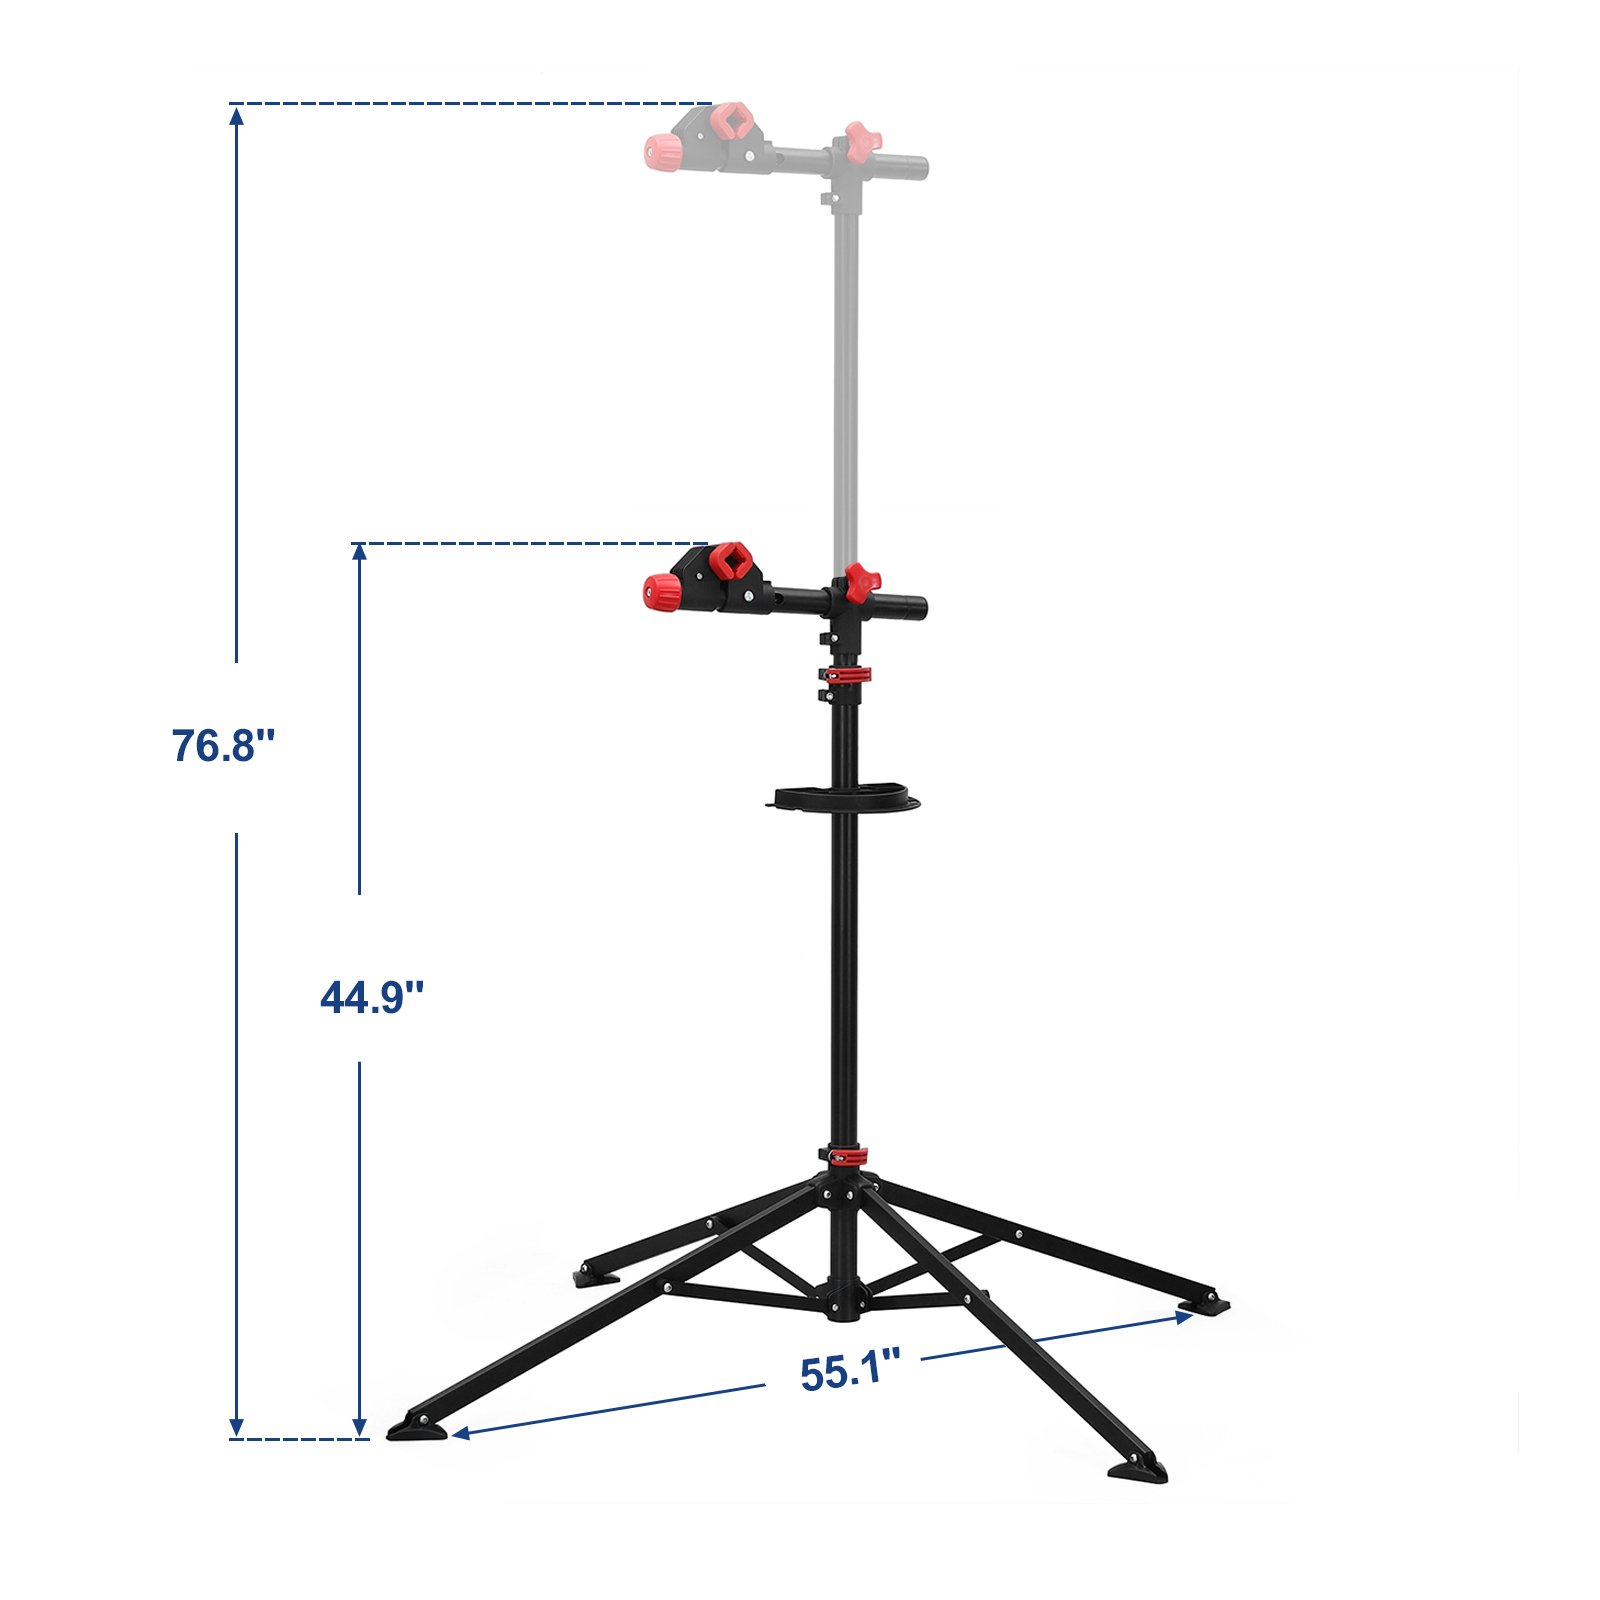 SONGMICS Pro Mechanic Bike Repair Stand with Tool Tray Telescopic Bicycle Maintenance Rack Workstand Lightweight and Portable USBR02B by SONGMICS (Image #3)